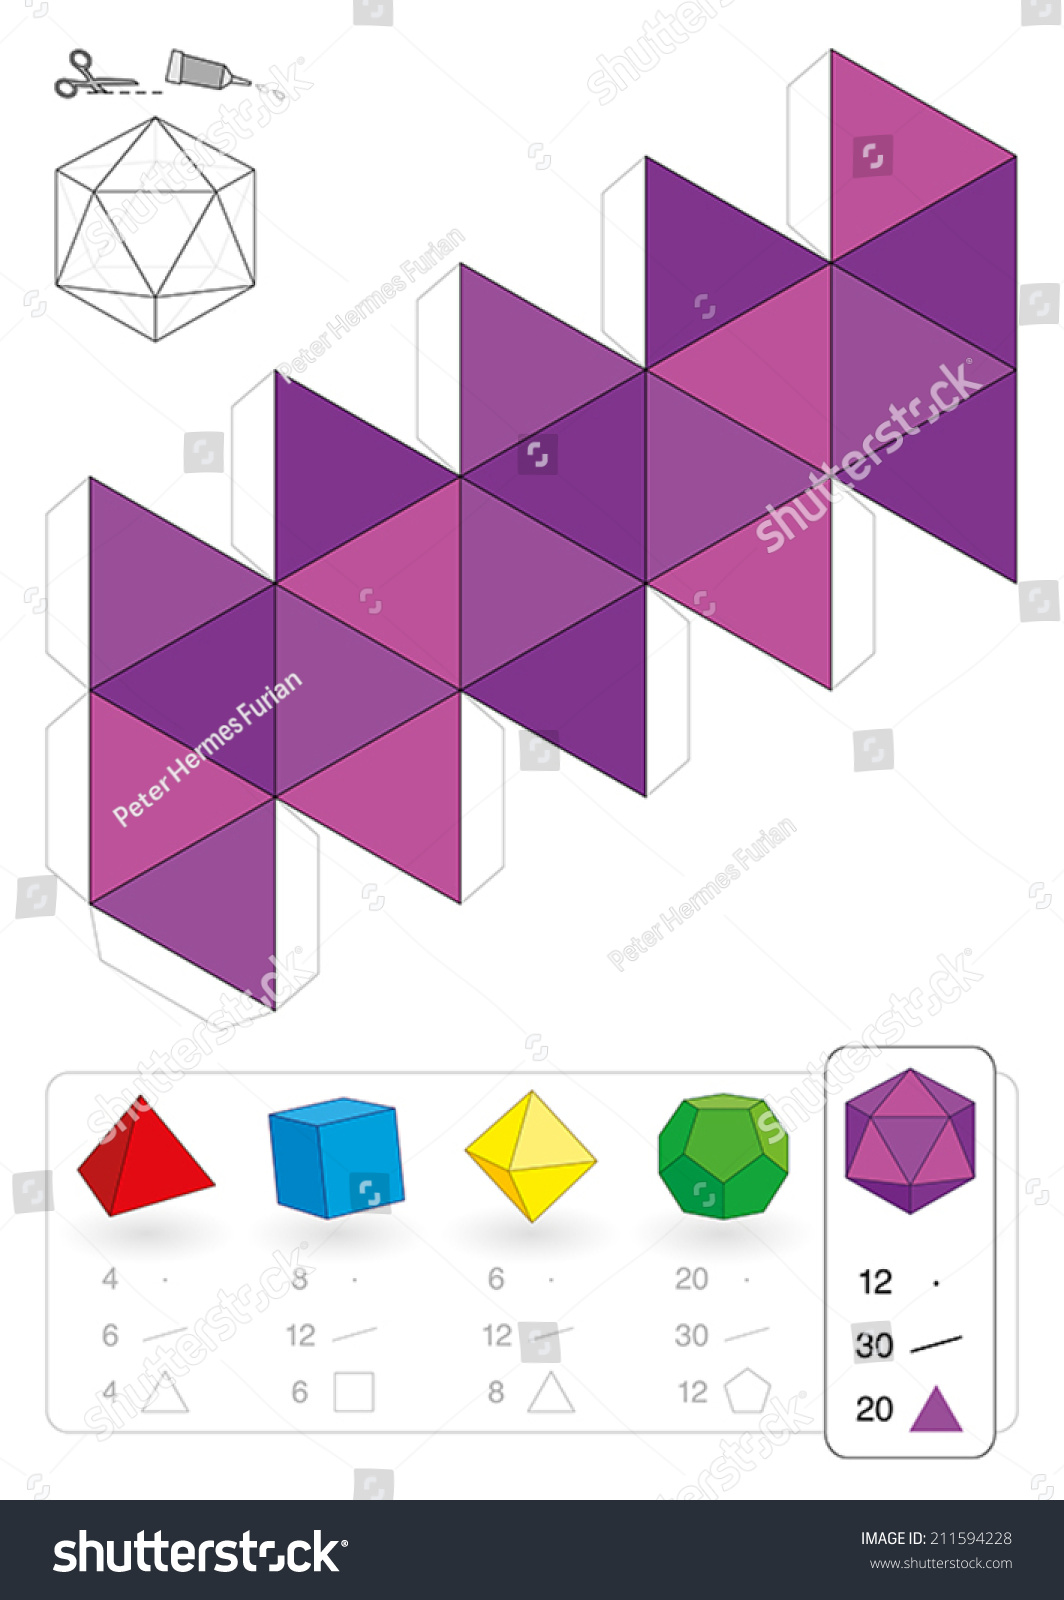 Paper Model Of An Icosahedron One Of The Five Platonic Solids To Make A Three Dimensional